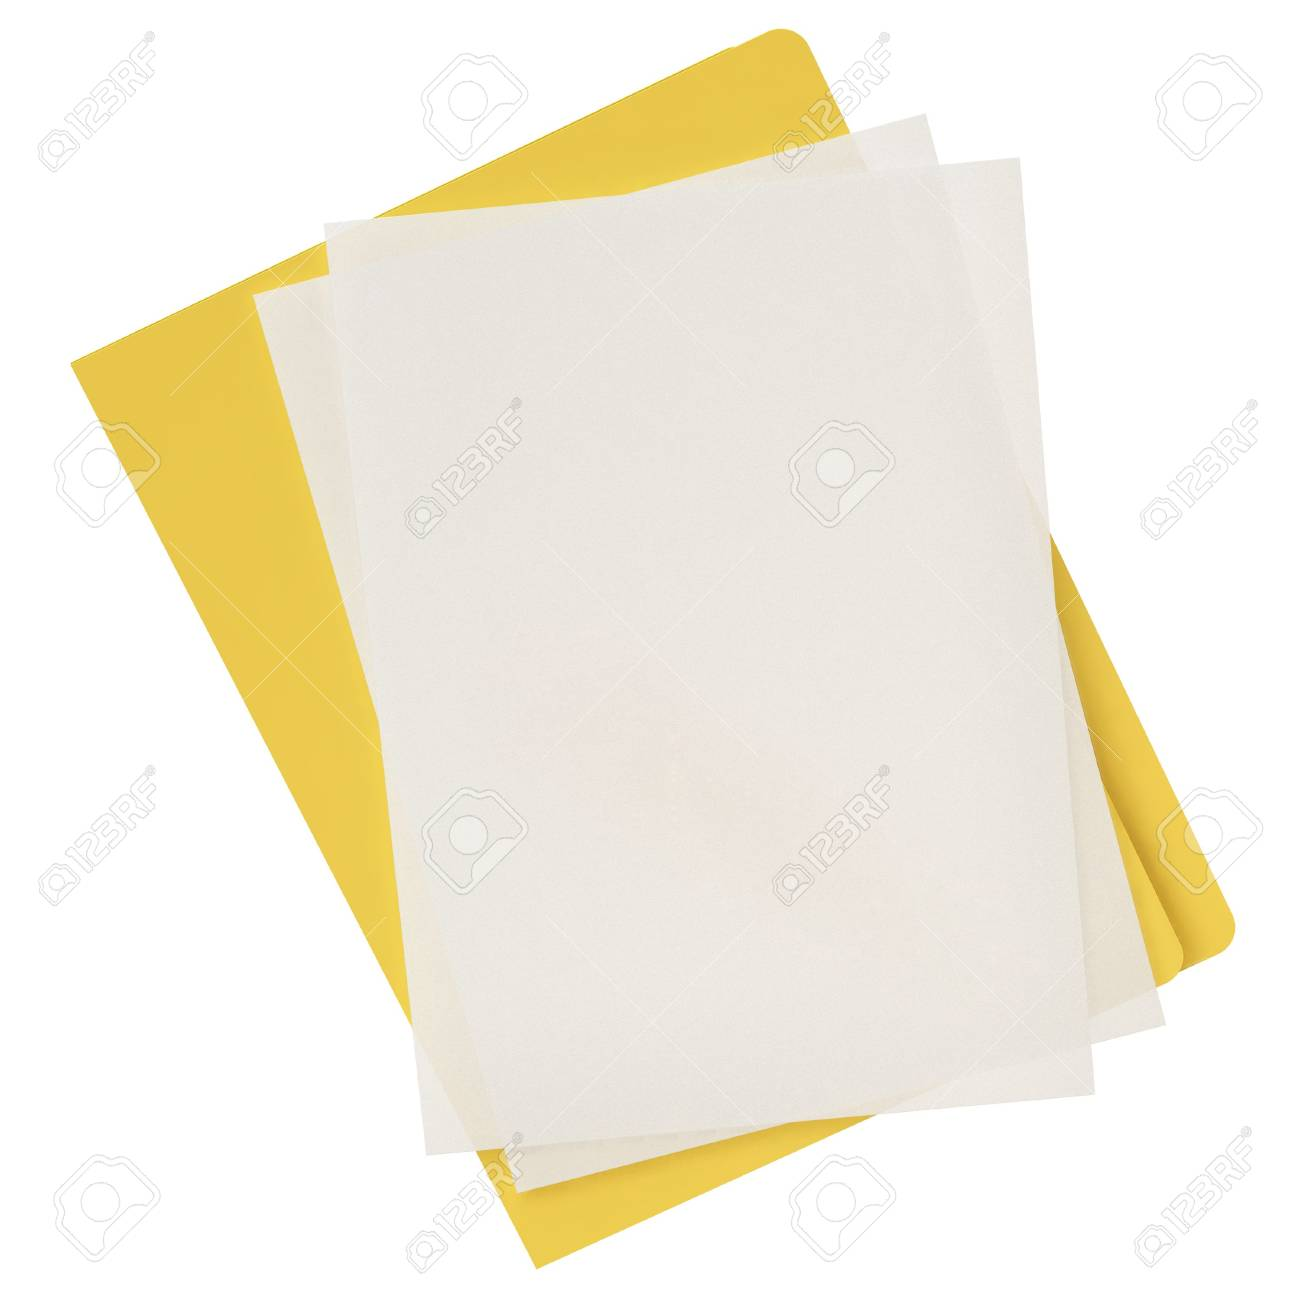 Folder & document icon isolated over a white background. This is a 3D rendered picture. Stock Photo - 860756